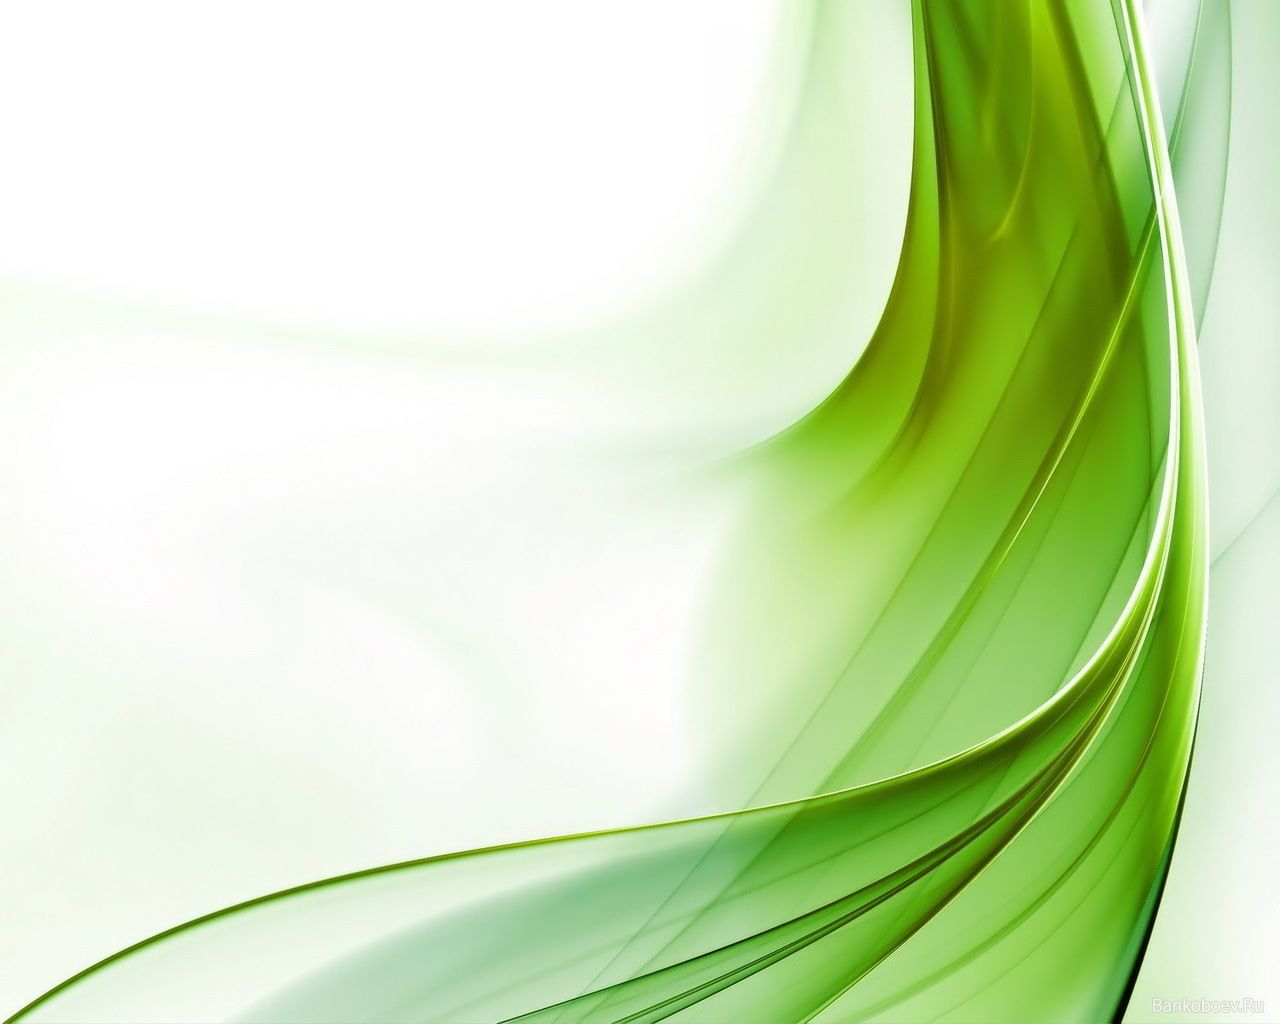 Green wave abstract backgrounds for powerpoint templates ...